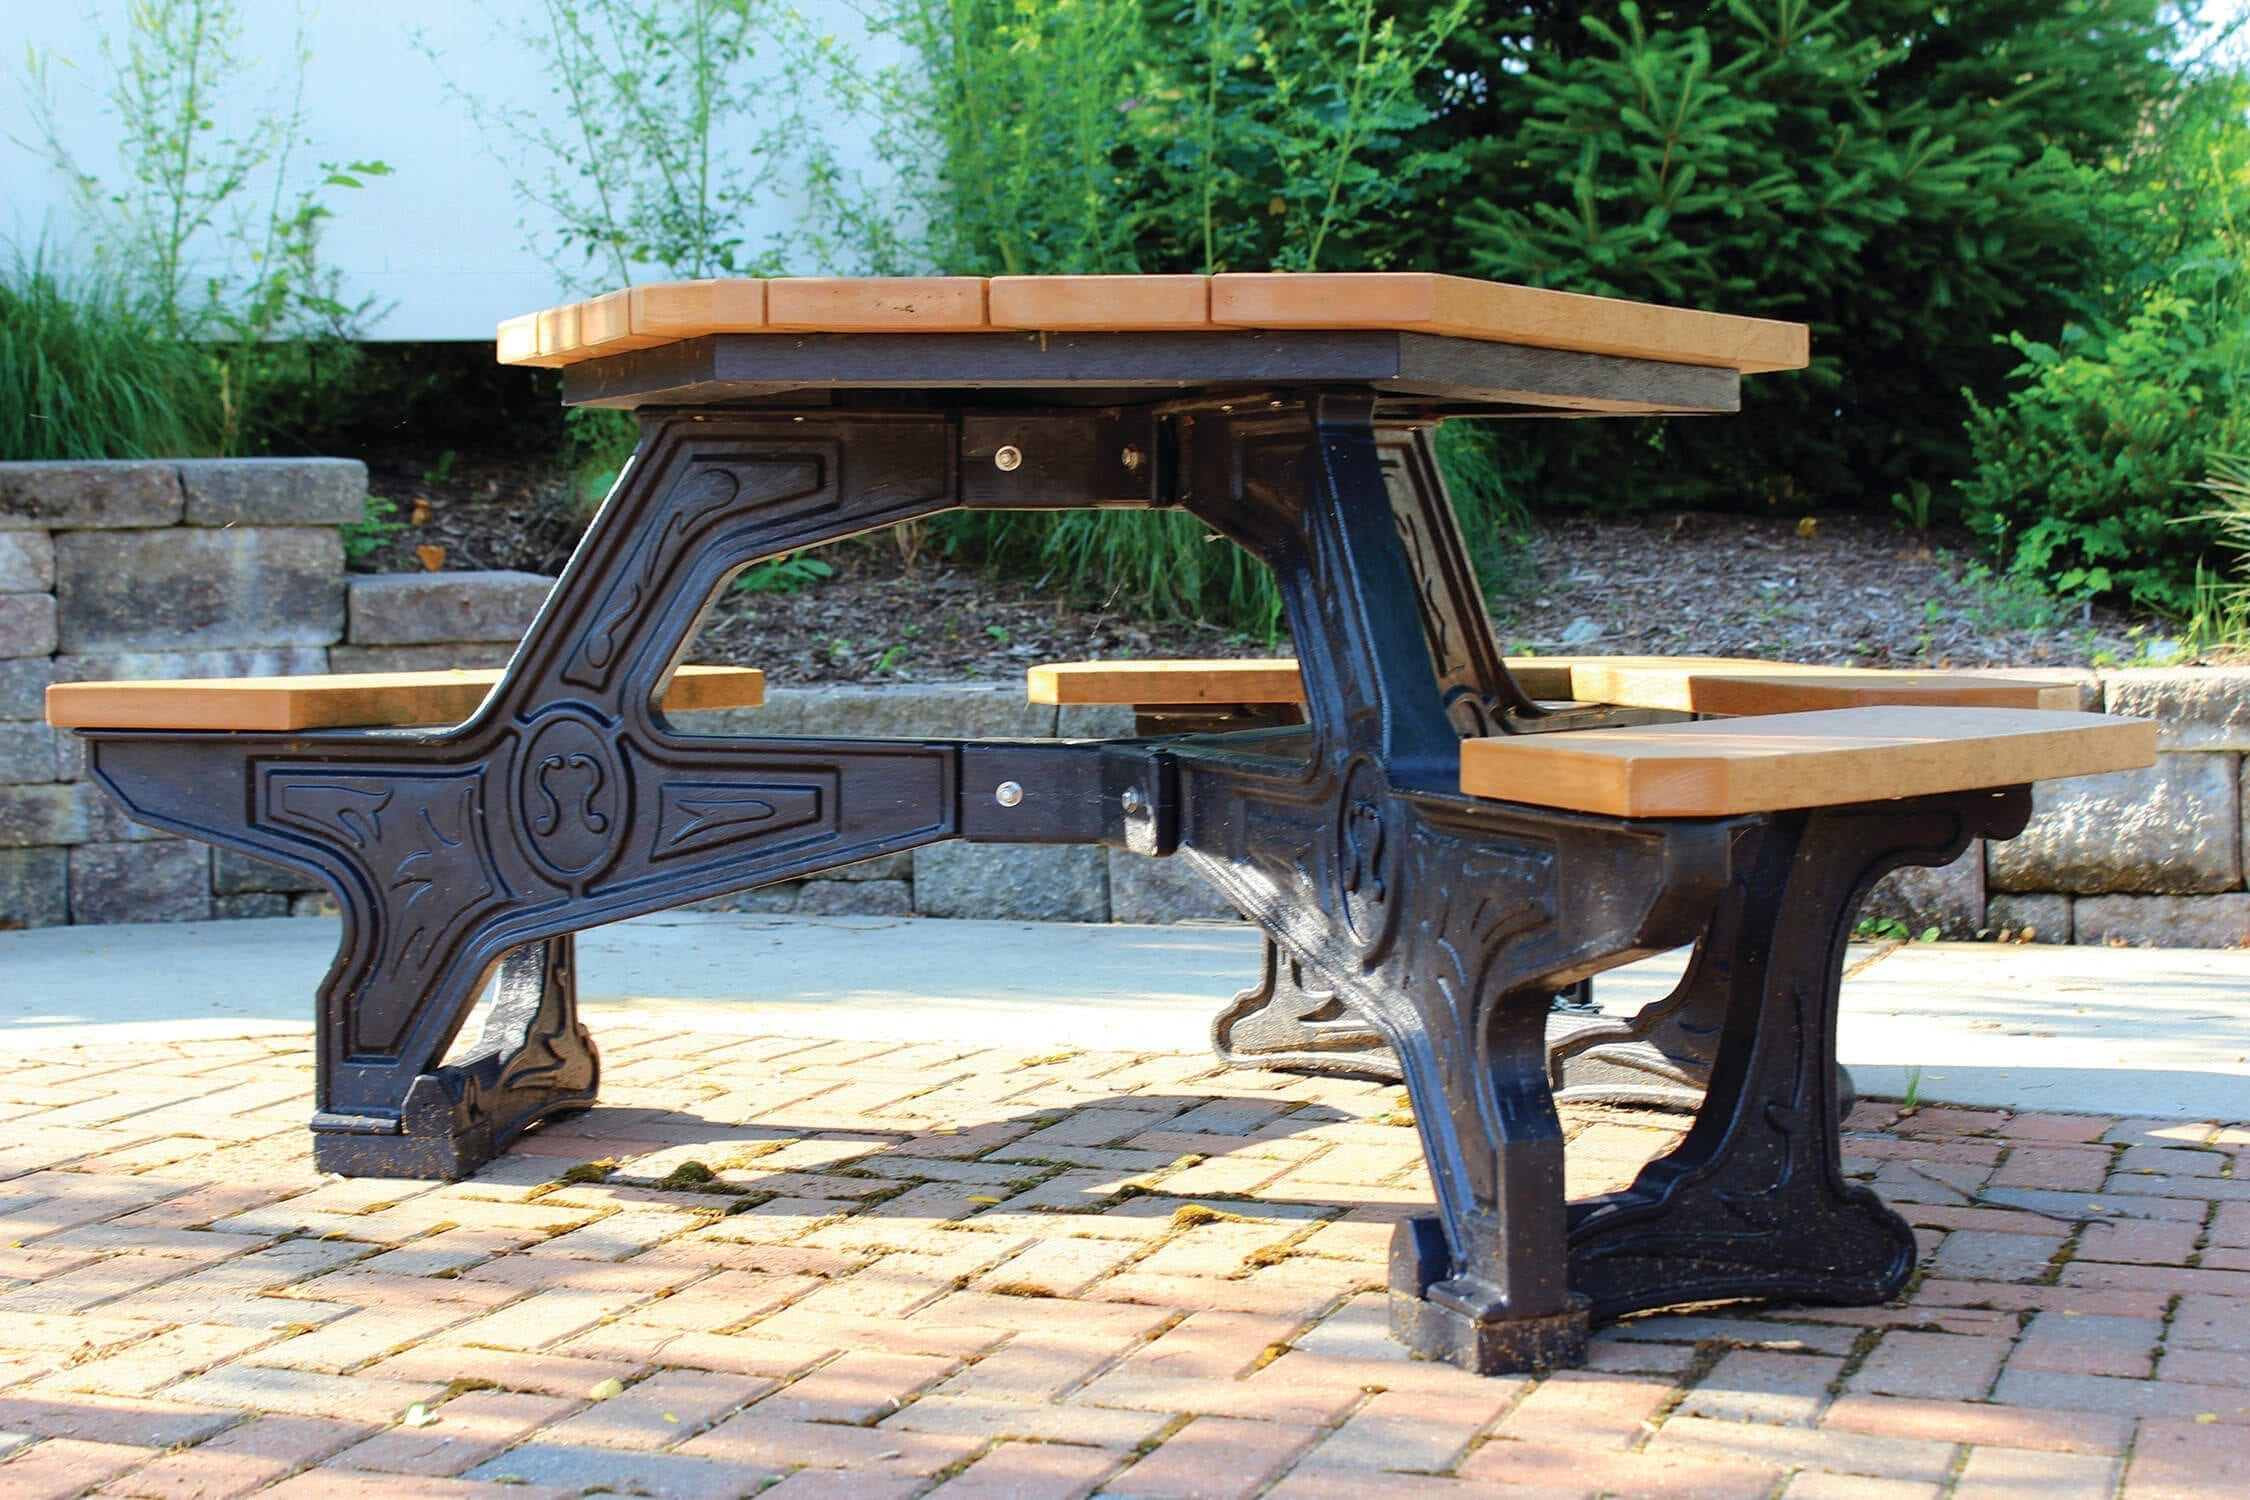 ADA Accessible Hex Shaped Picnic Table